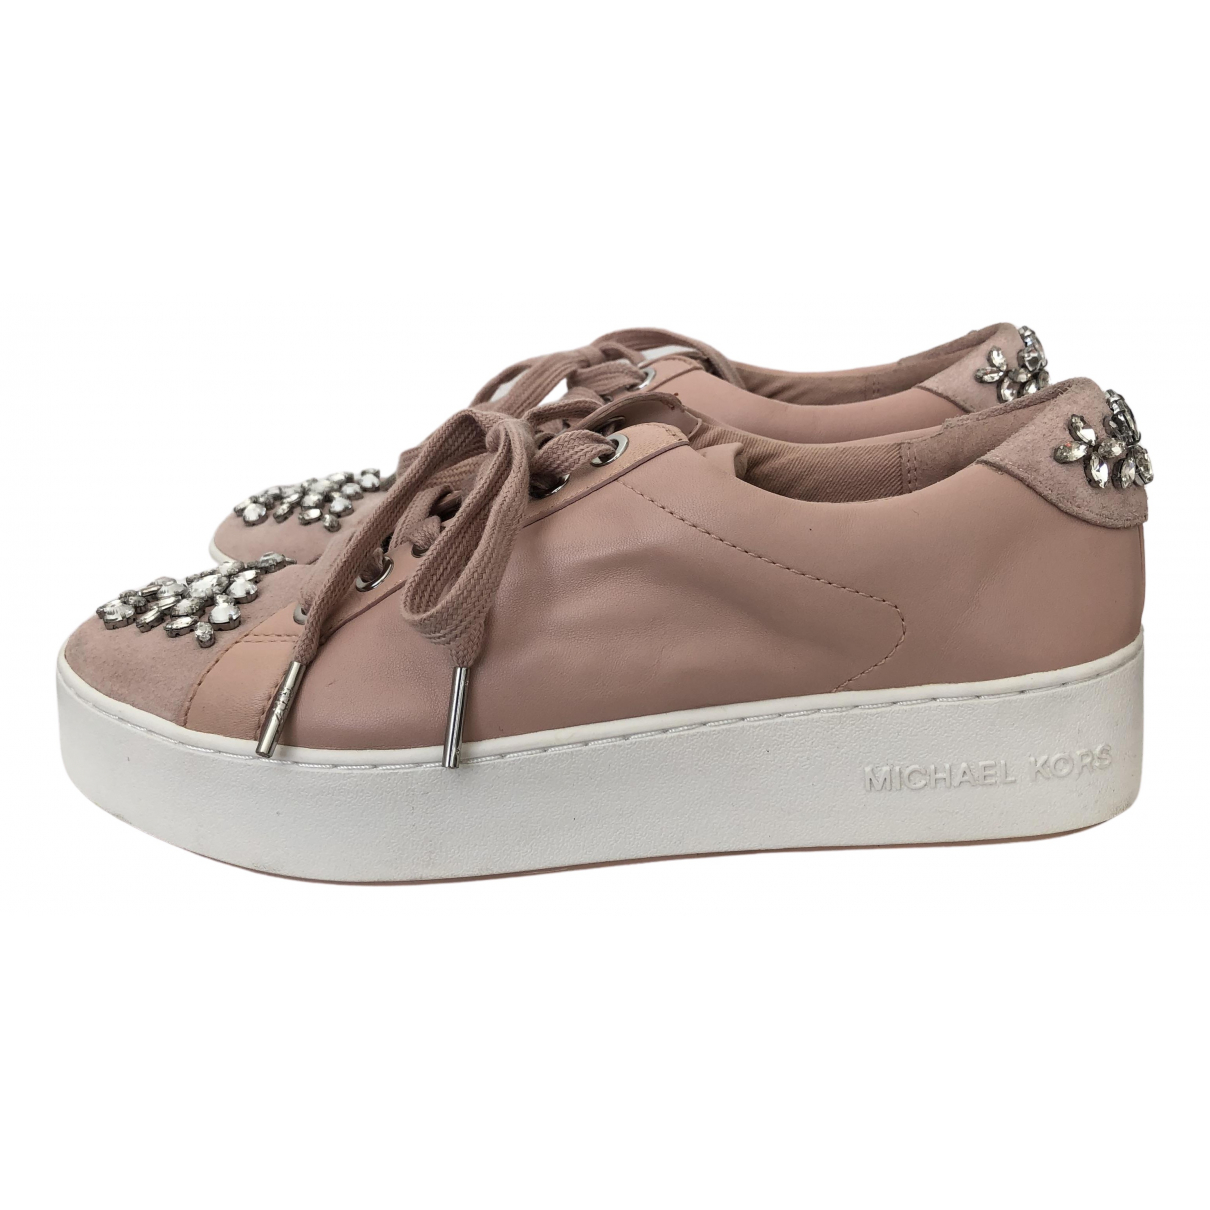 Michael Kors N Pink Leather Trainers for Women 4 UK